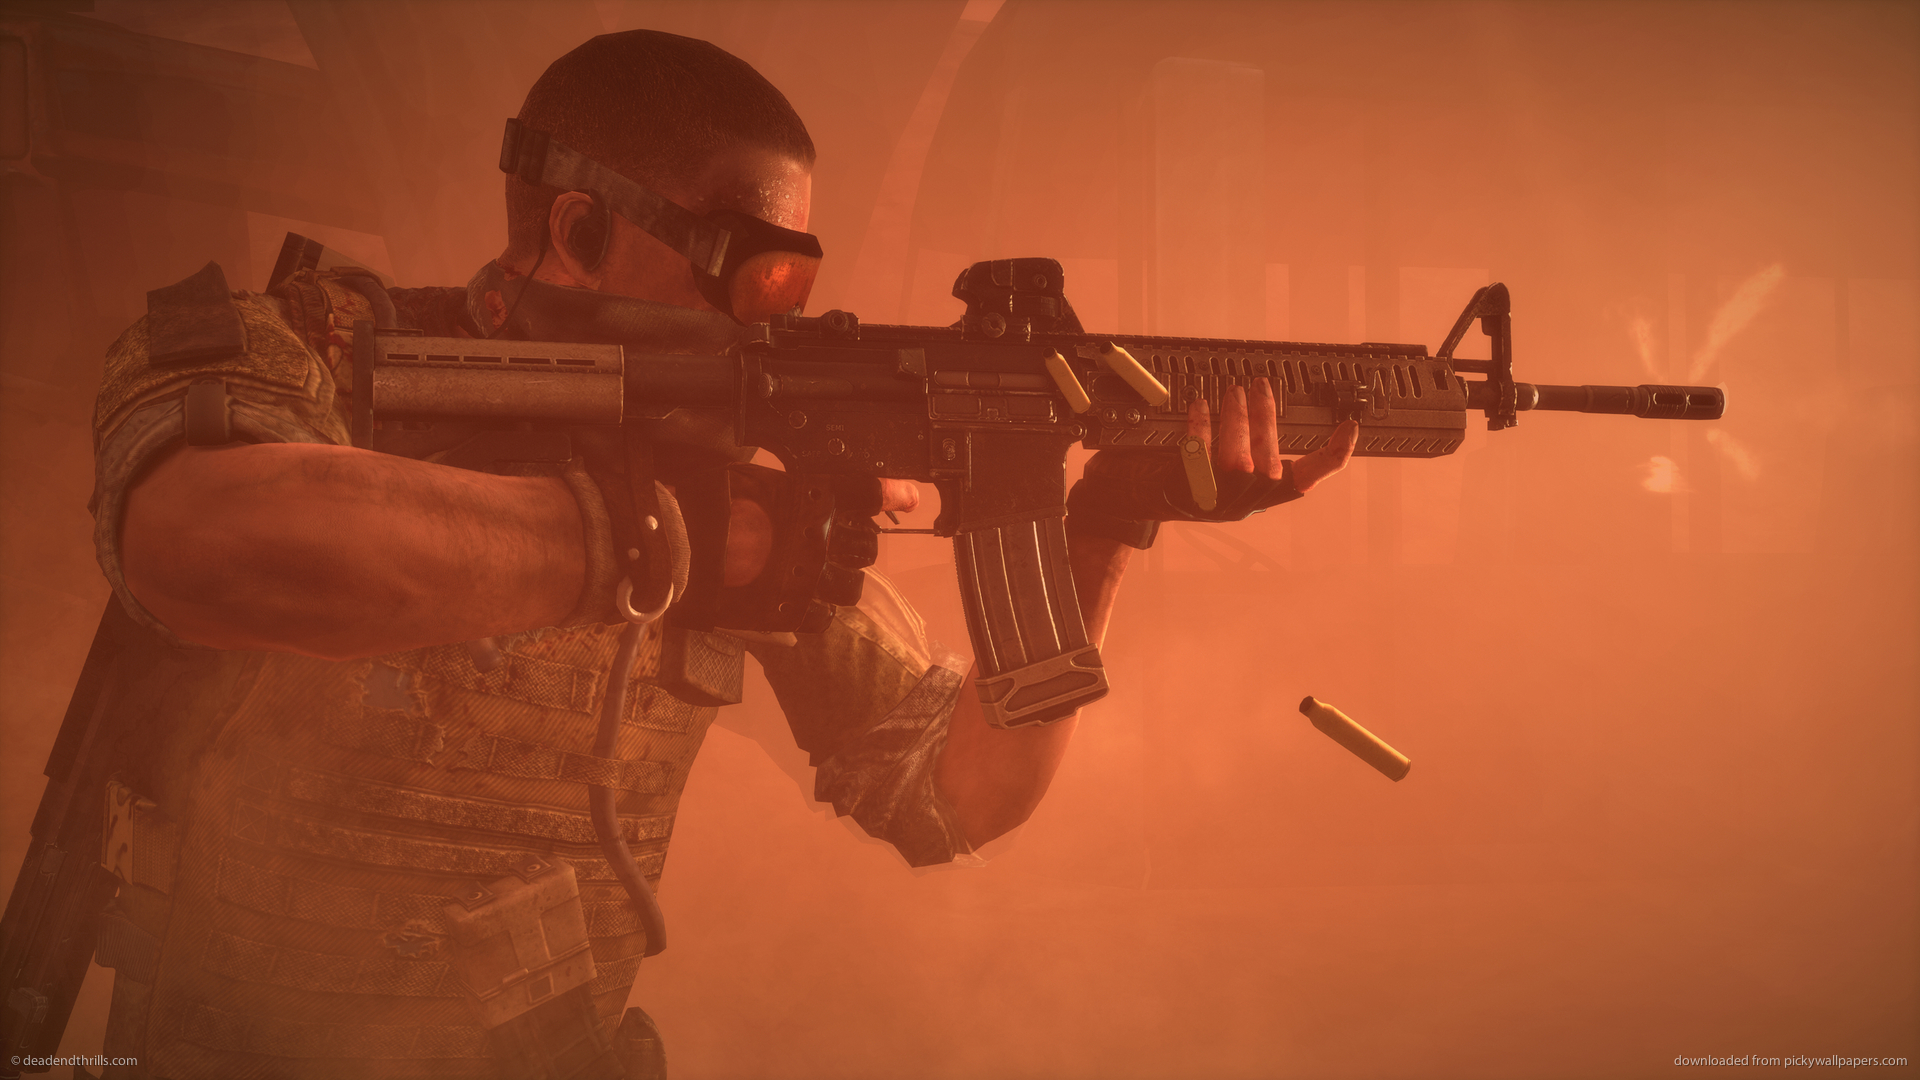 73] Spec Ops The Line Wallpaper on WallpaperSafari 1920x1080